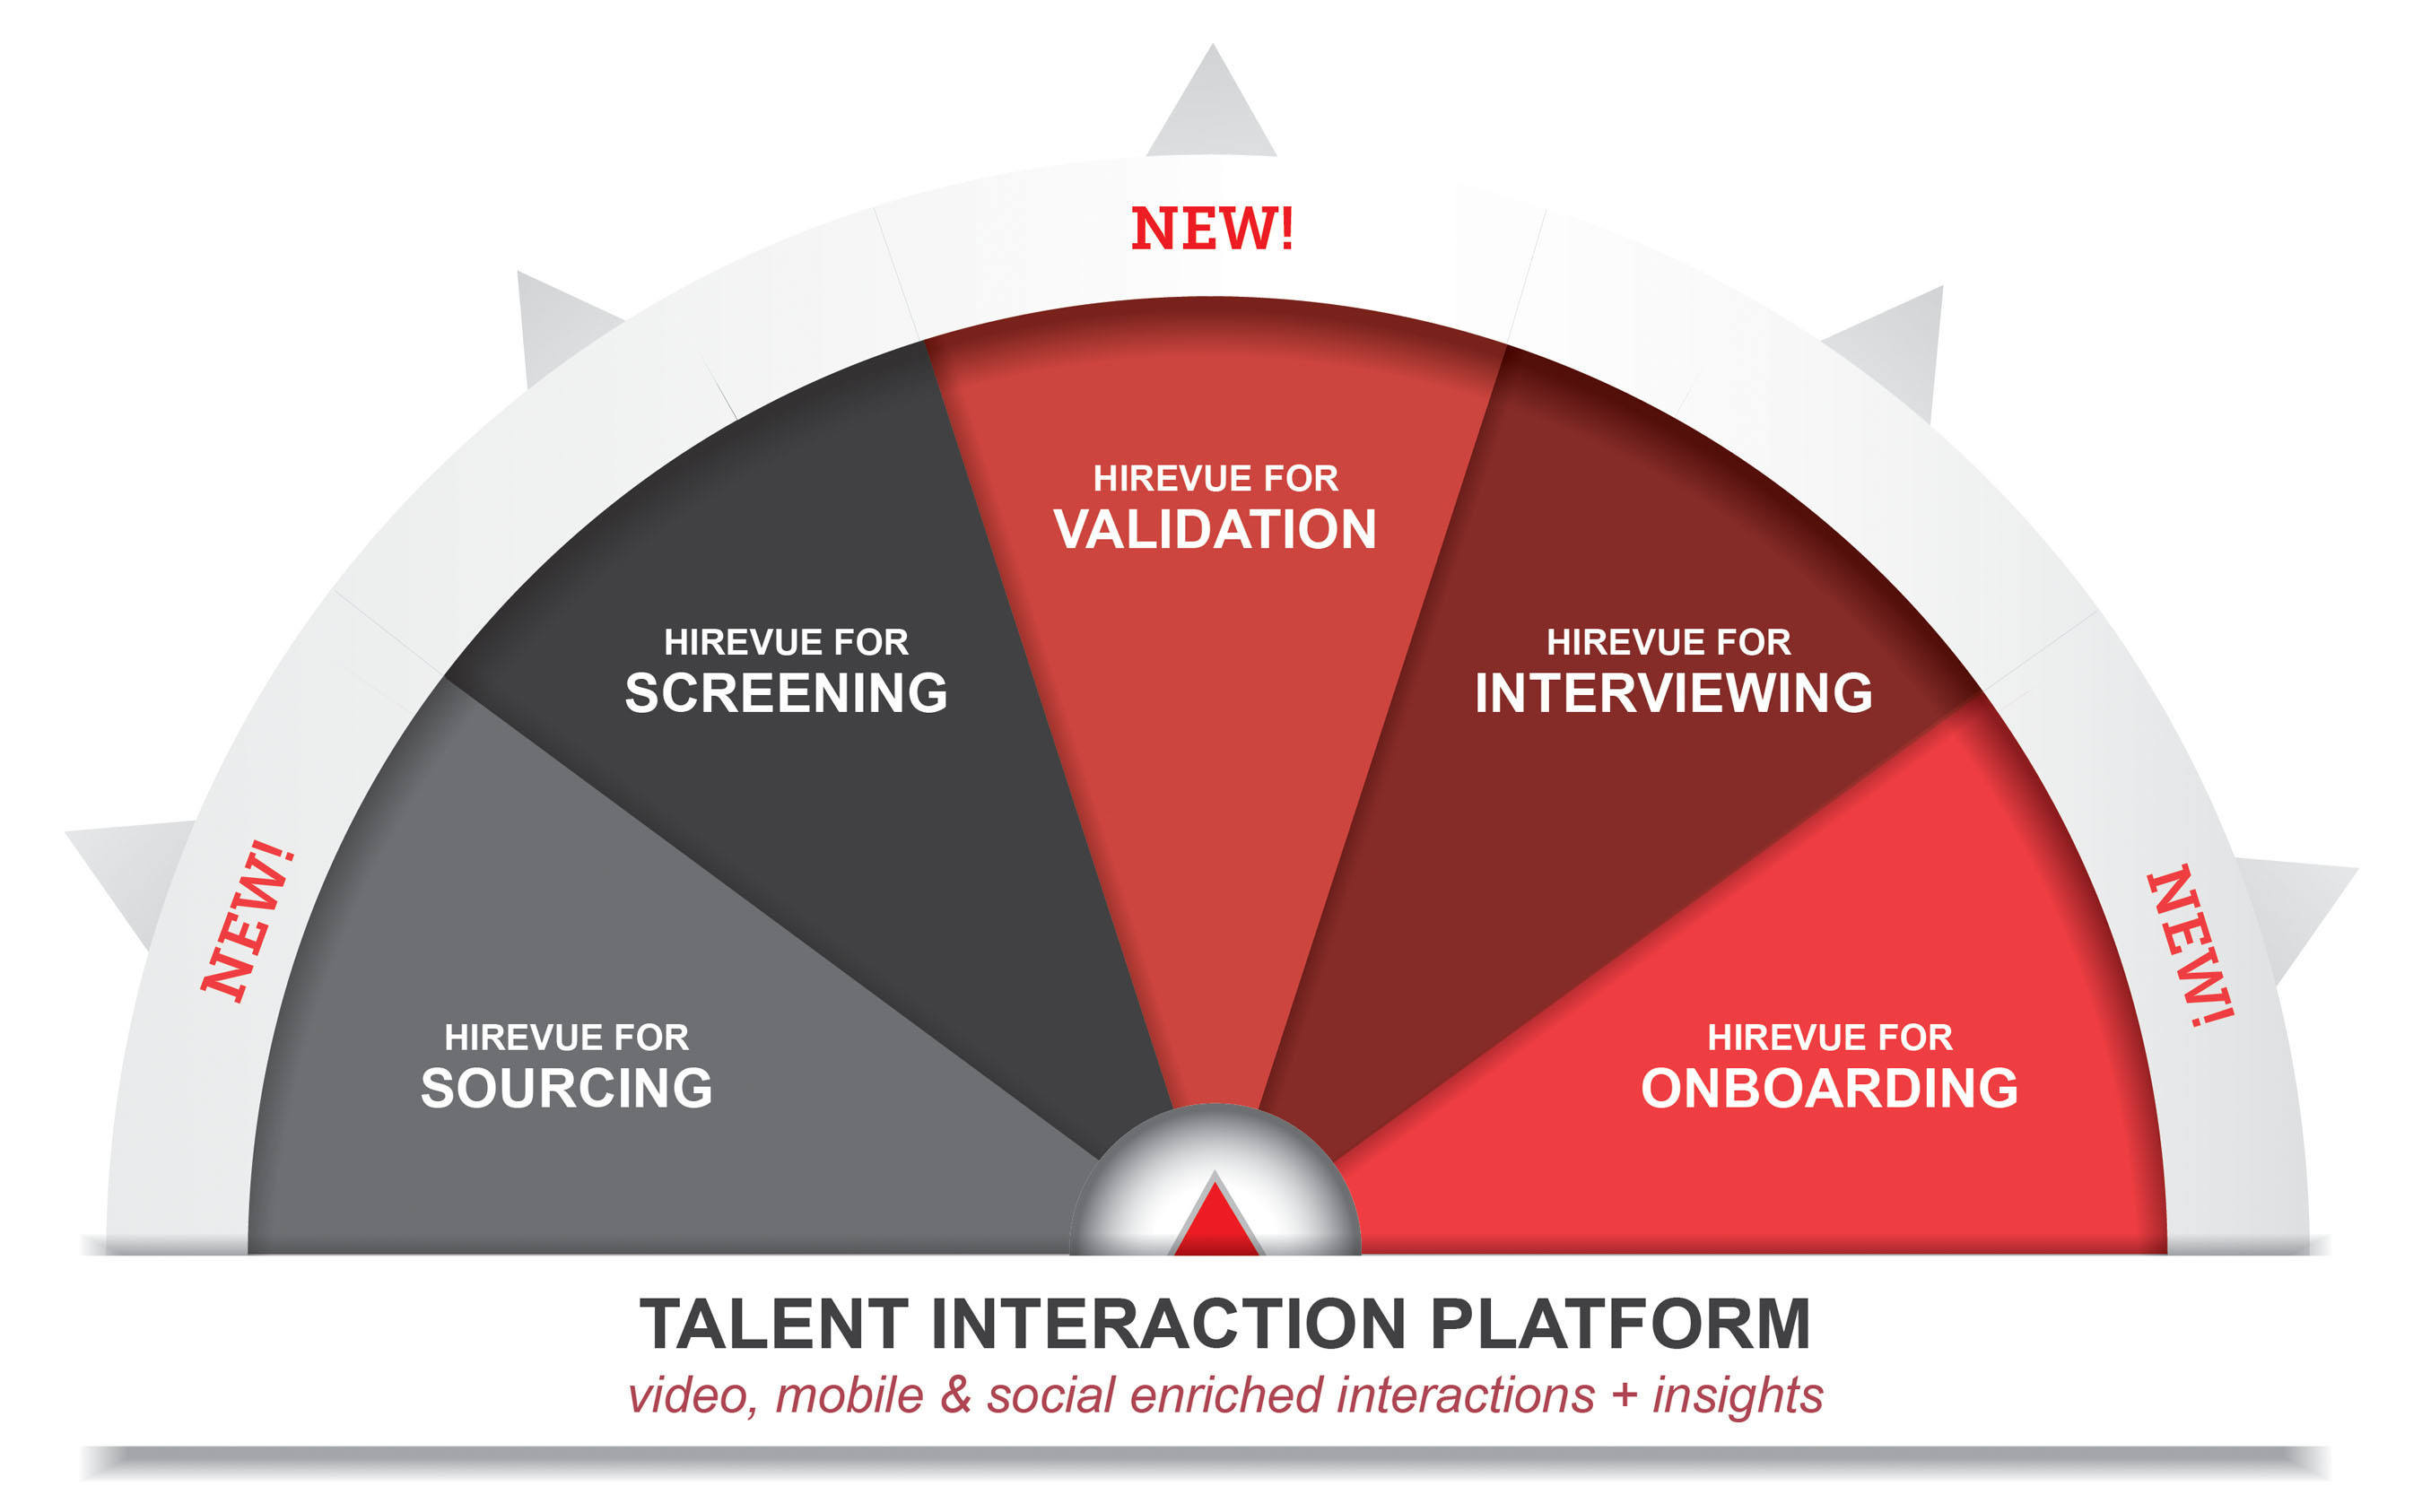 HireVue Introduces Talent Interaction Platform and Partners with Sequoia in $25 Million Funding